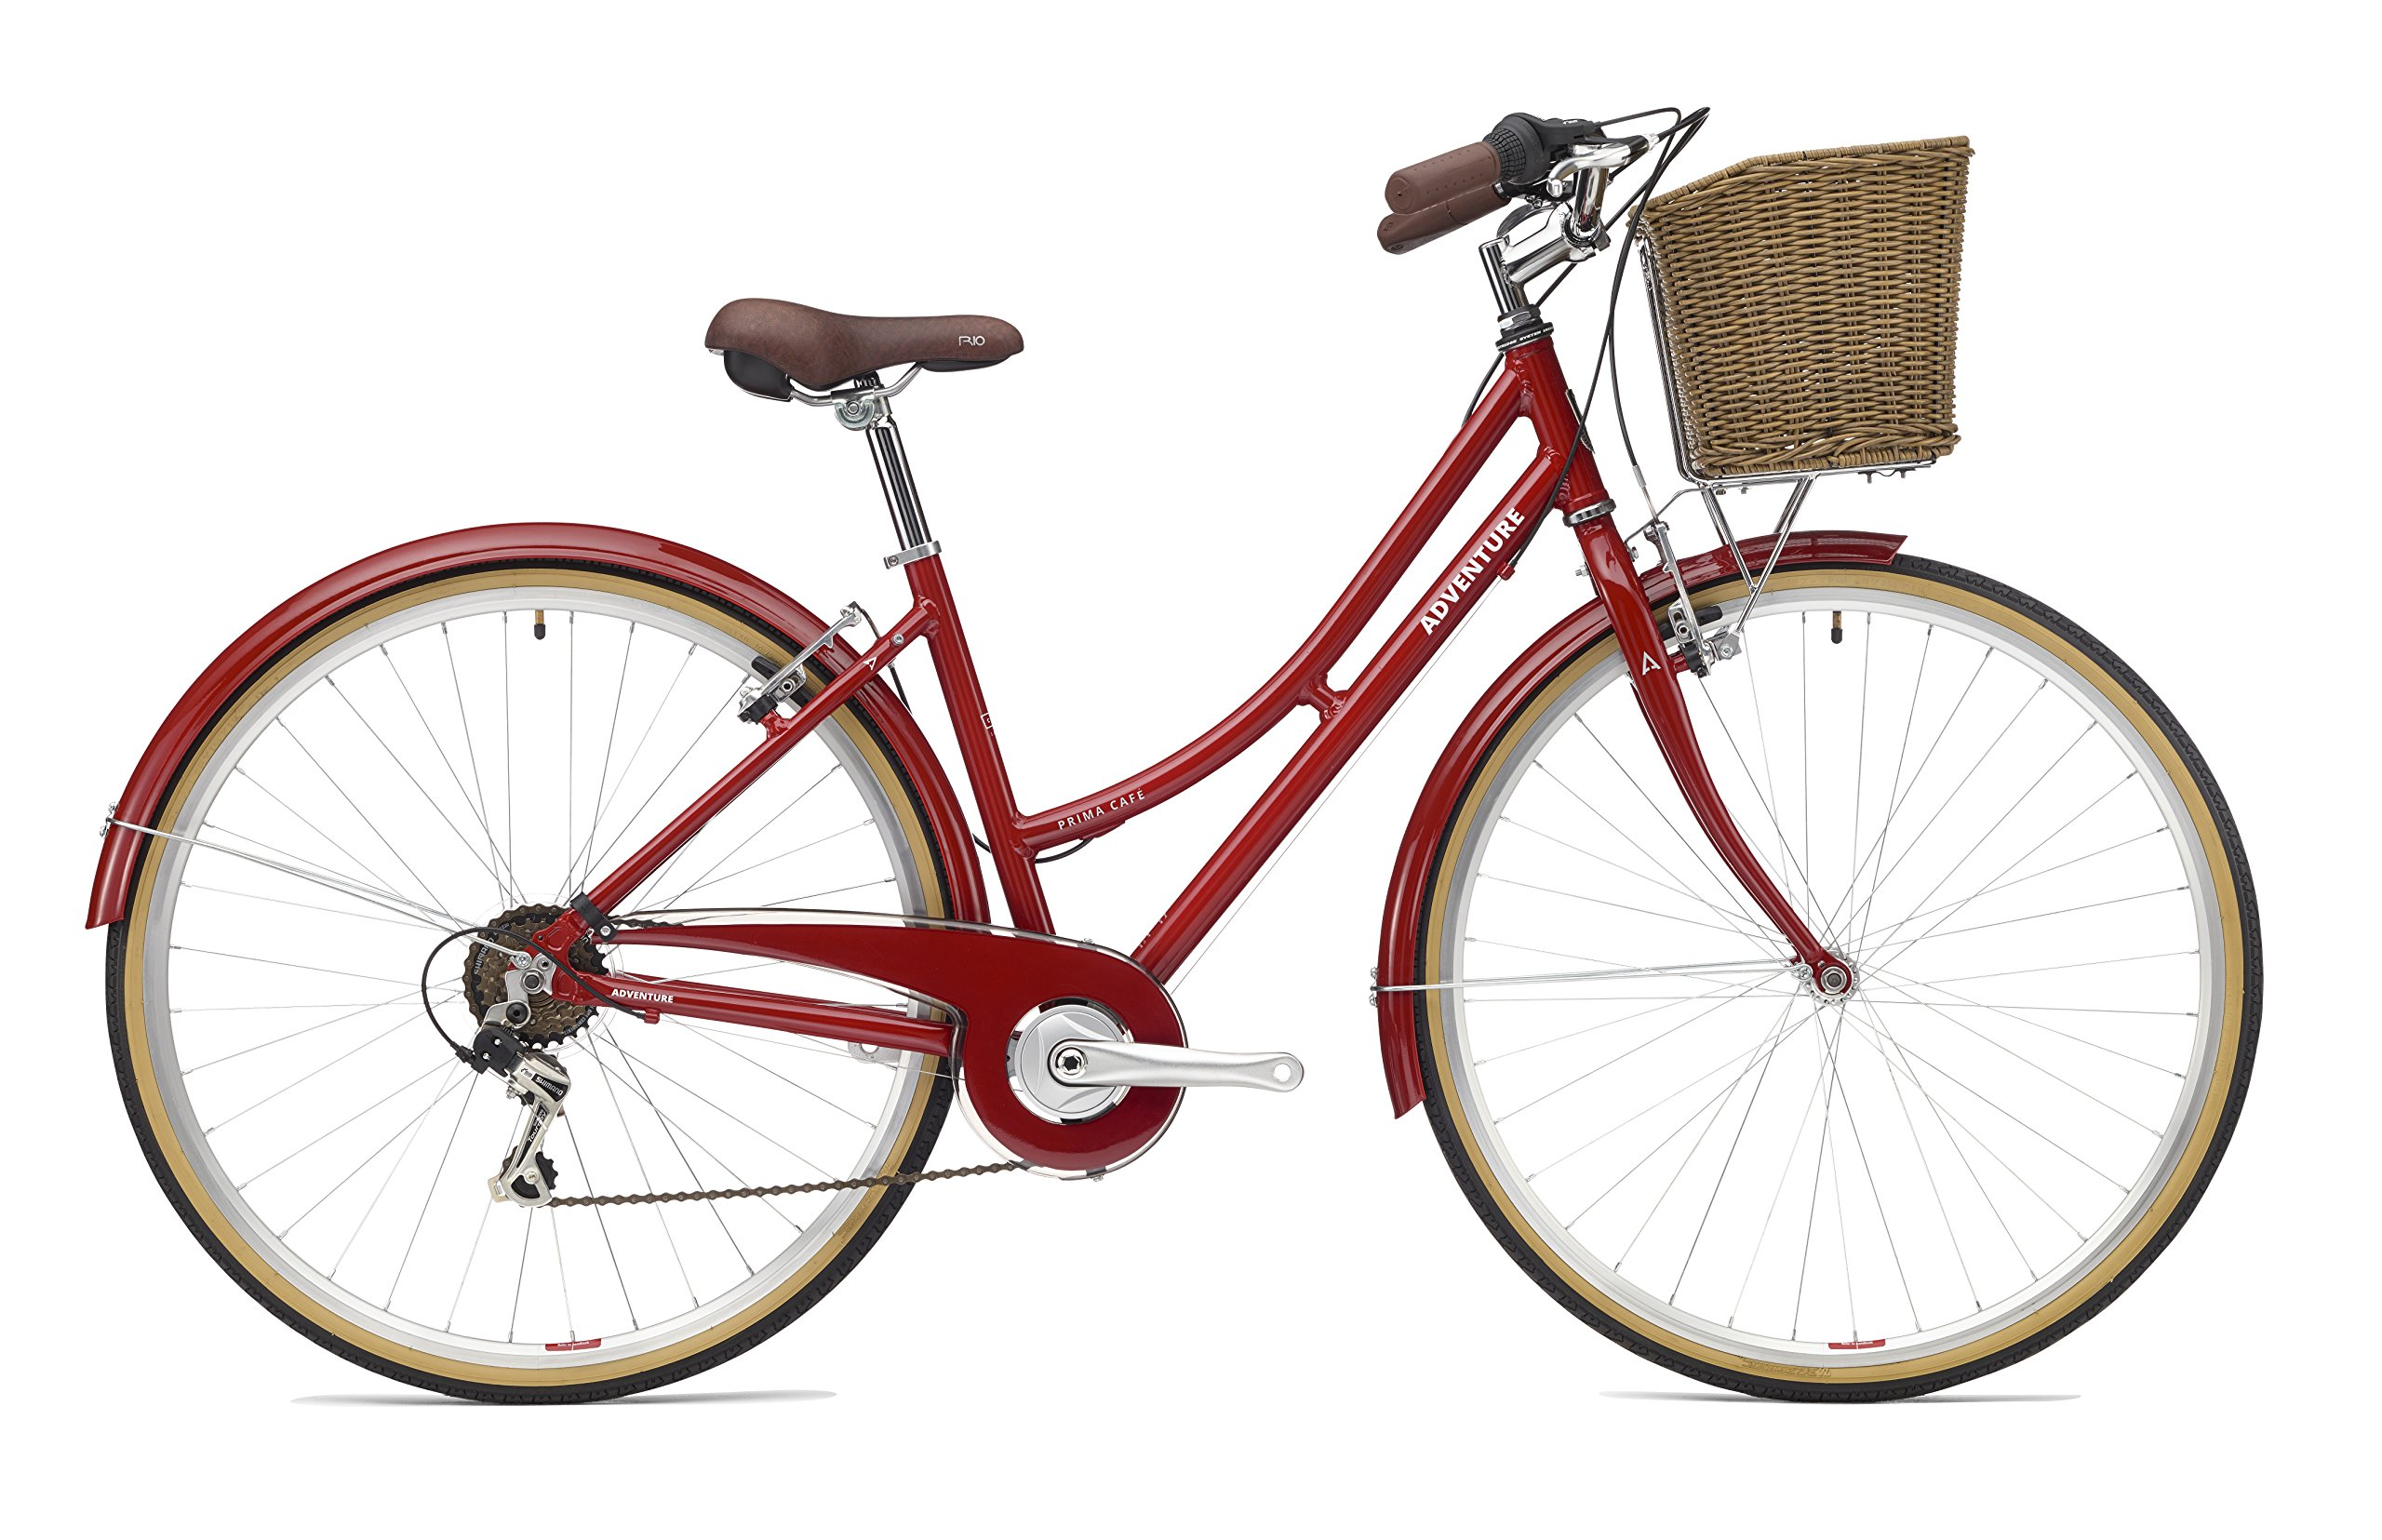 81sxzdt Q5L - Adventure Women's Prima Café Traditional Bike